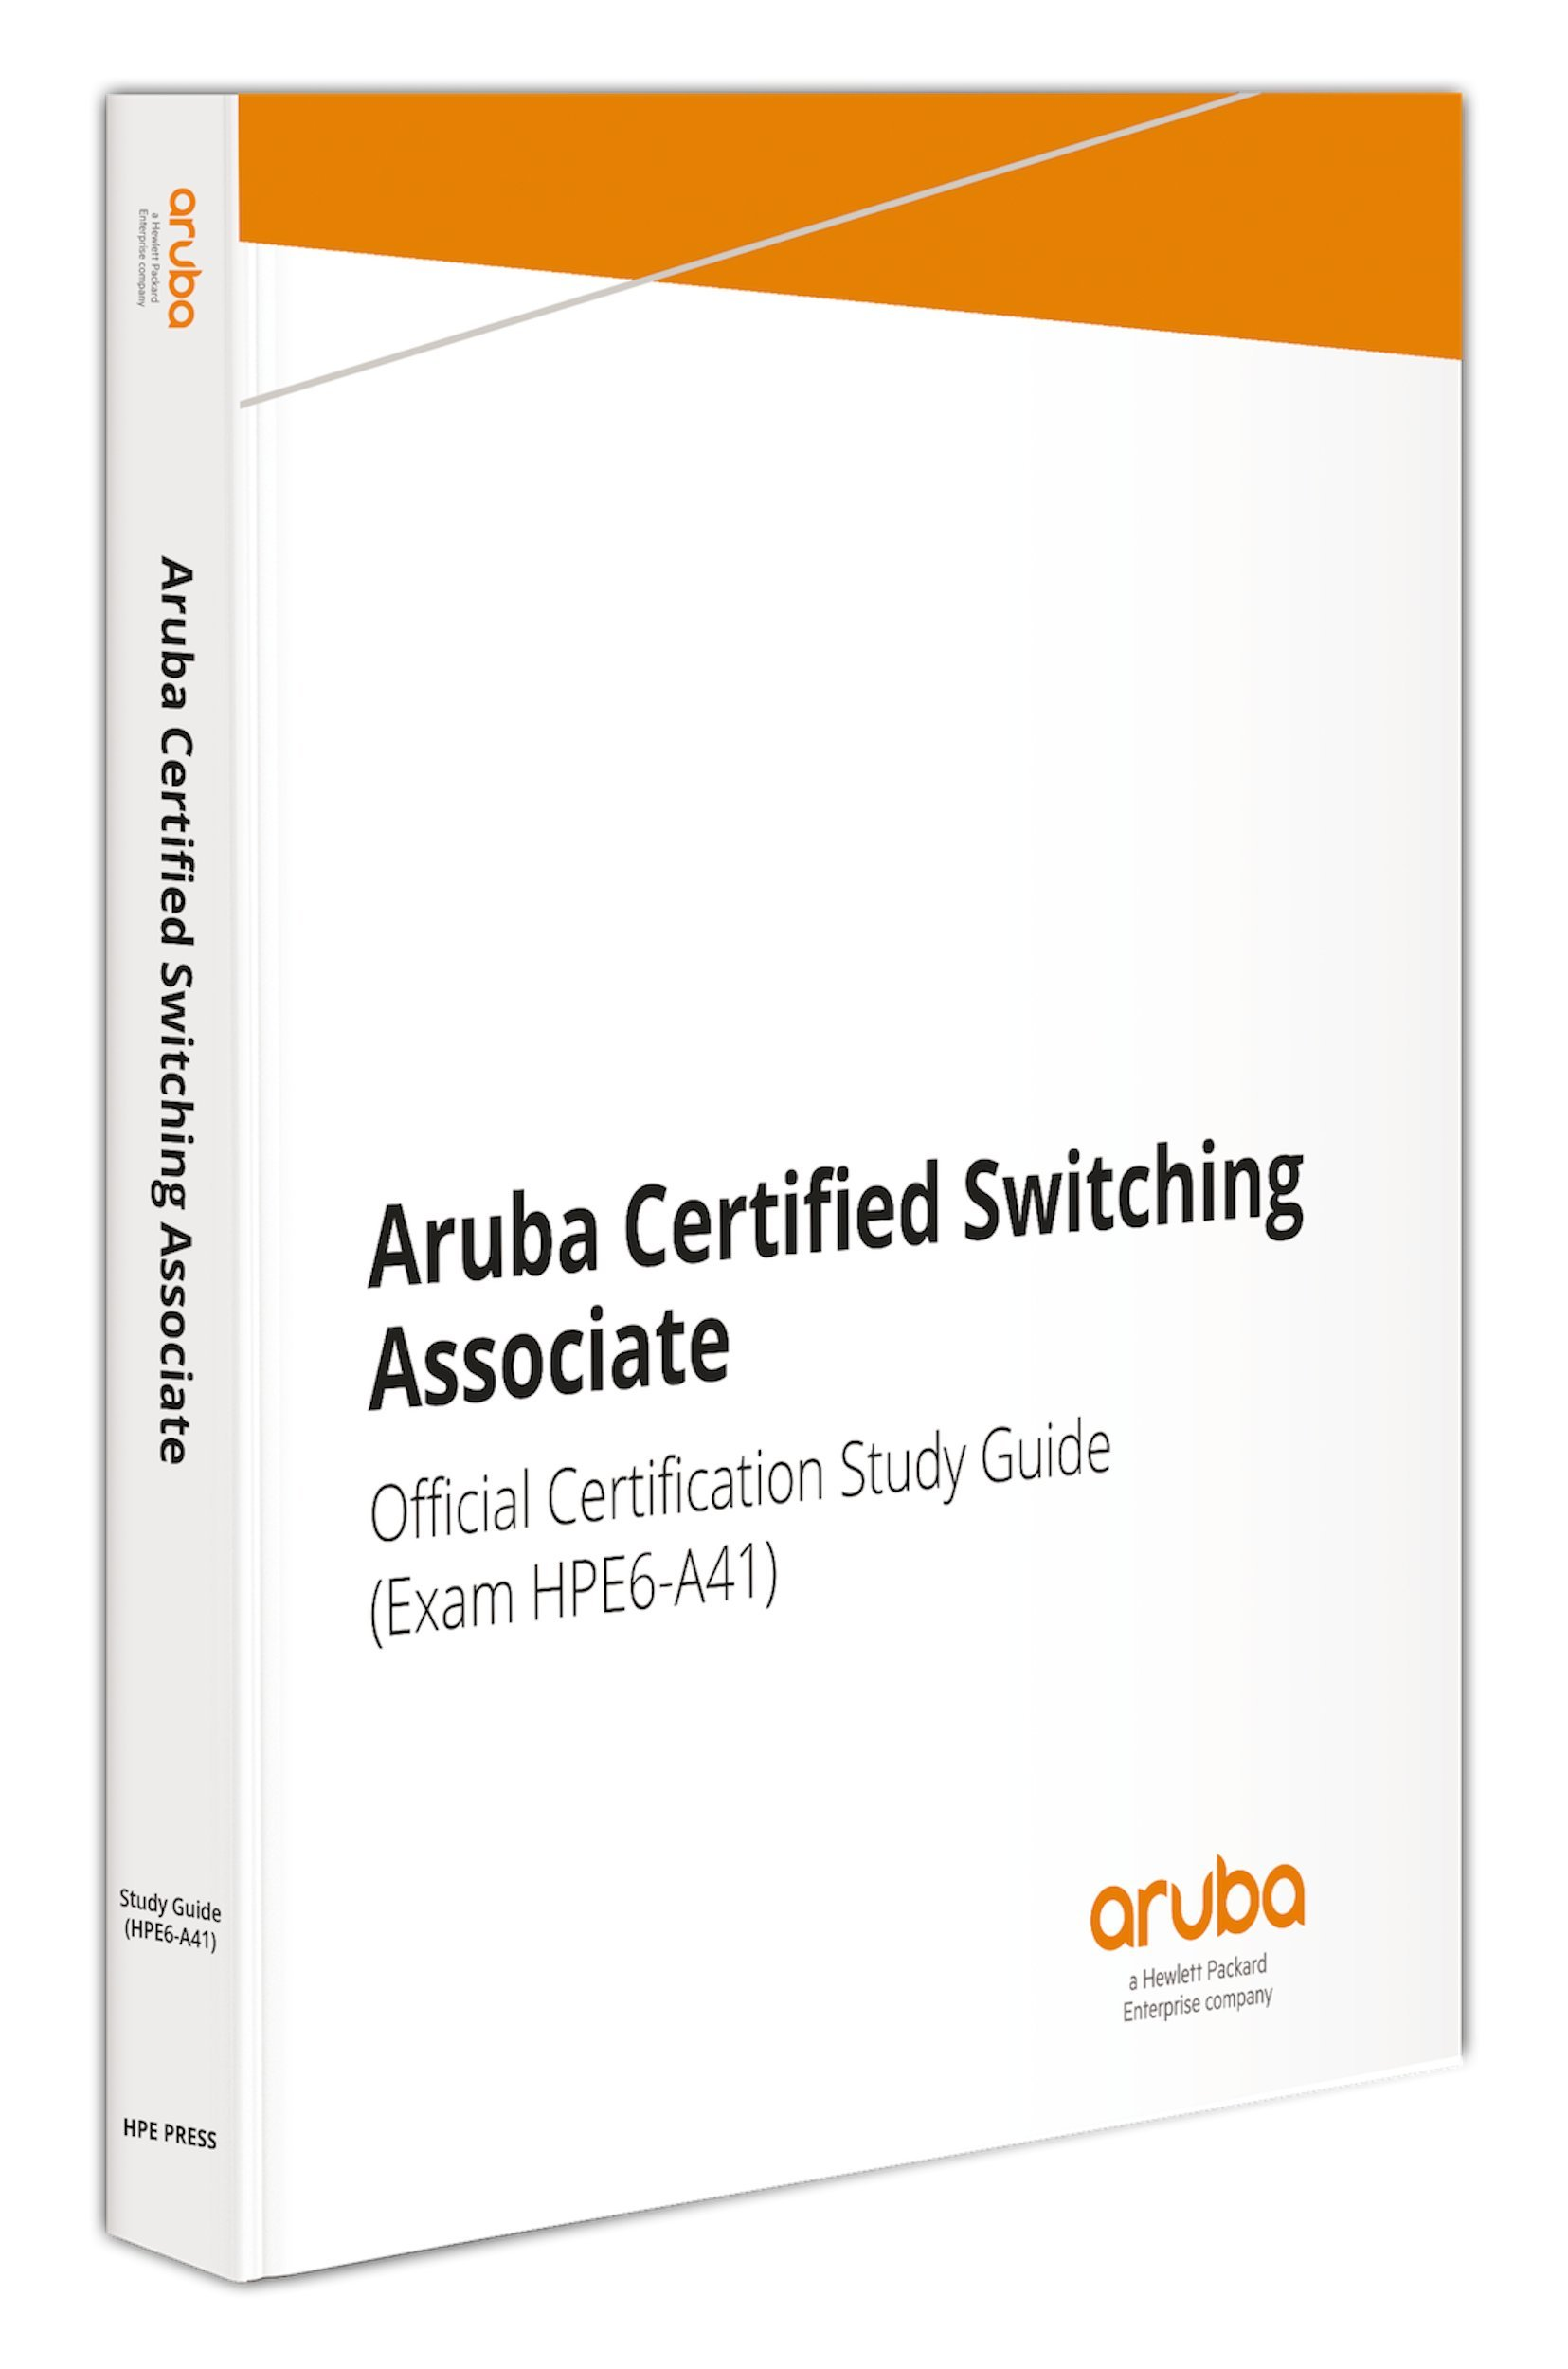 Aruba Certified Switching Associate Official Certification Study Guide  (HPE6-A41): Miriam Allred: 9781942741527: Amazon.com: Books